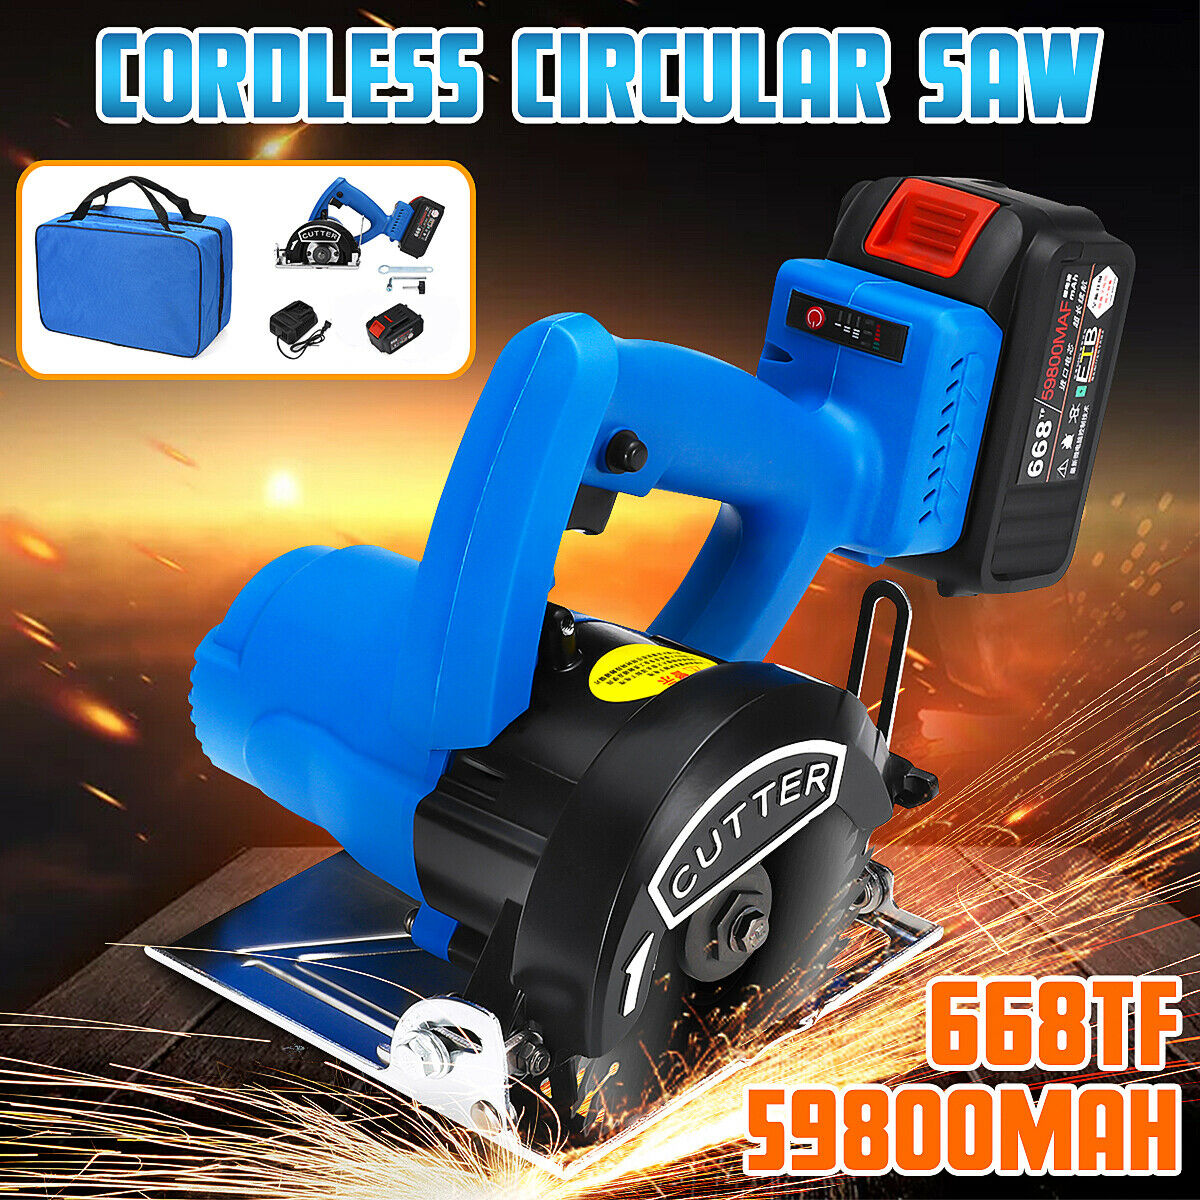 668TF 59800mah Cordless Electric Circular Saw 1500W With Li-ion Battery &Charger